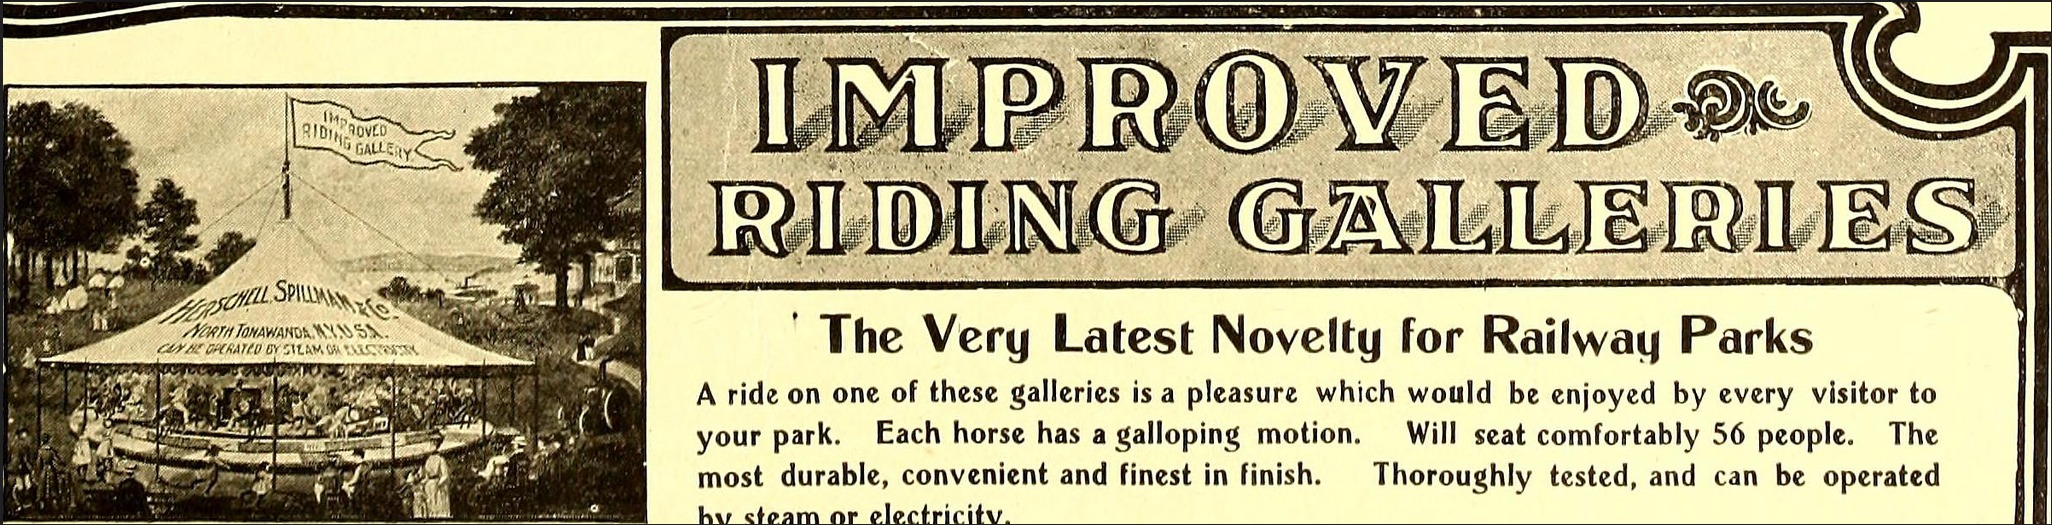 Herschell Spillman Improved Riding Gallery, illustrated ad (Street Railway Journal, 1884 PD).png